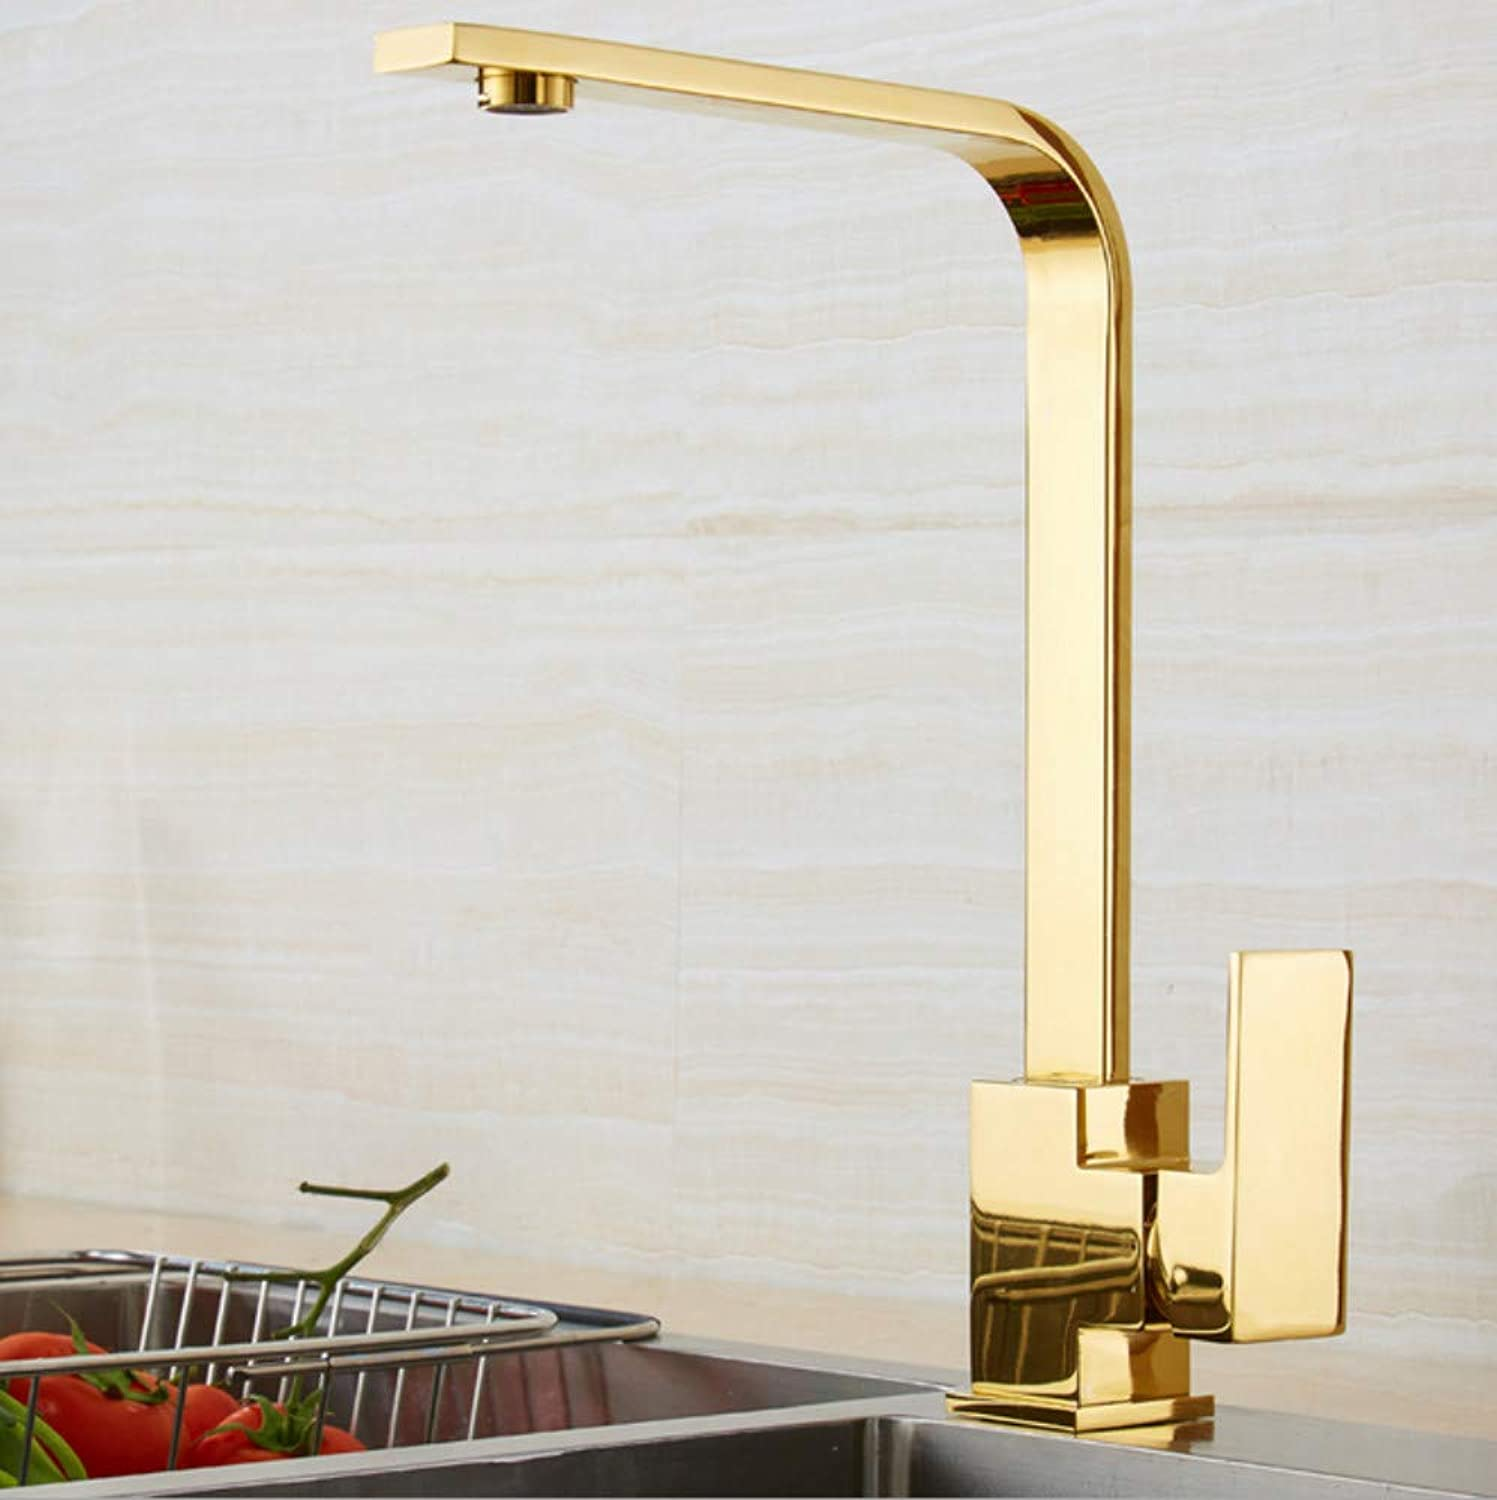 Xiujie Faucet Retro Bathroom Basin Faucet Copper Simple redating Kitchen Sink Hot and Cold Faucet Nordic American